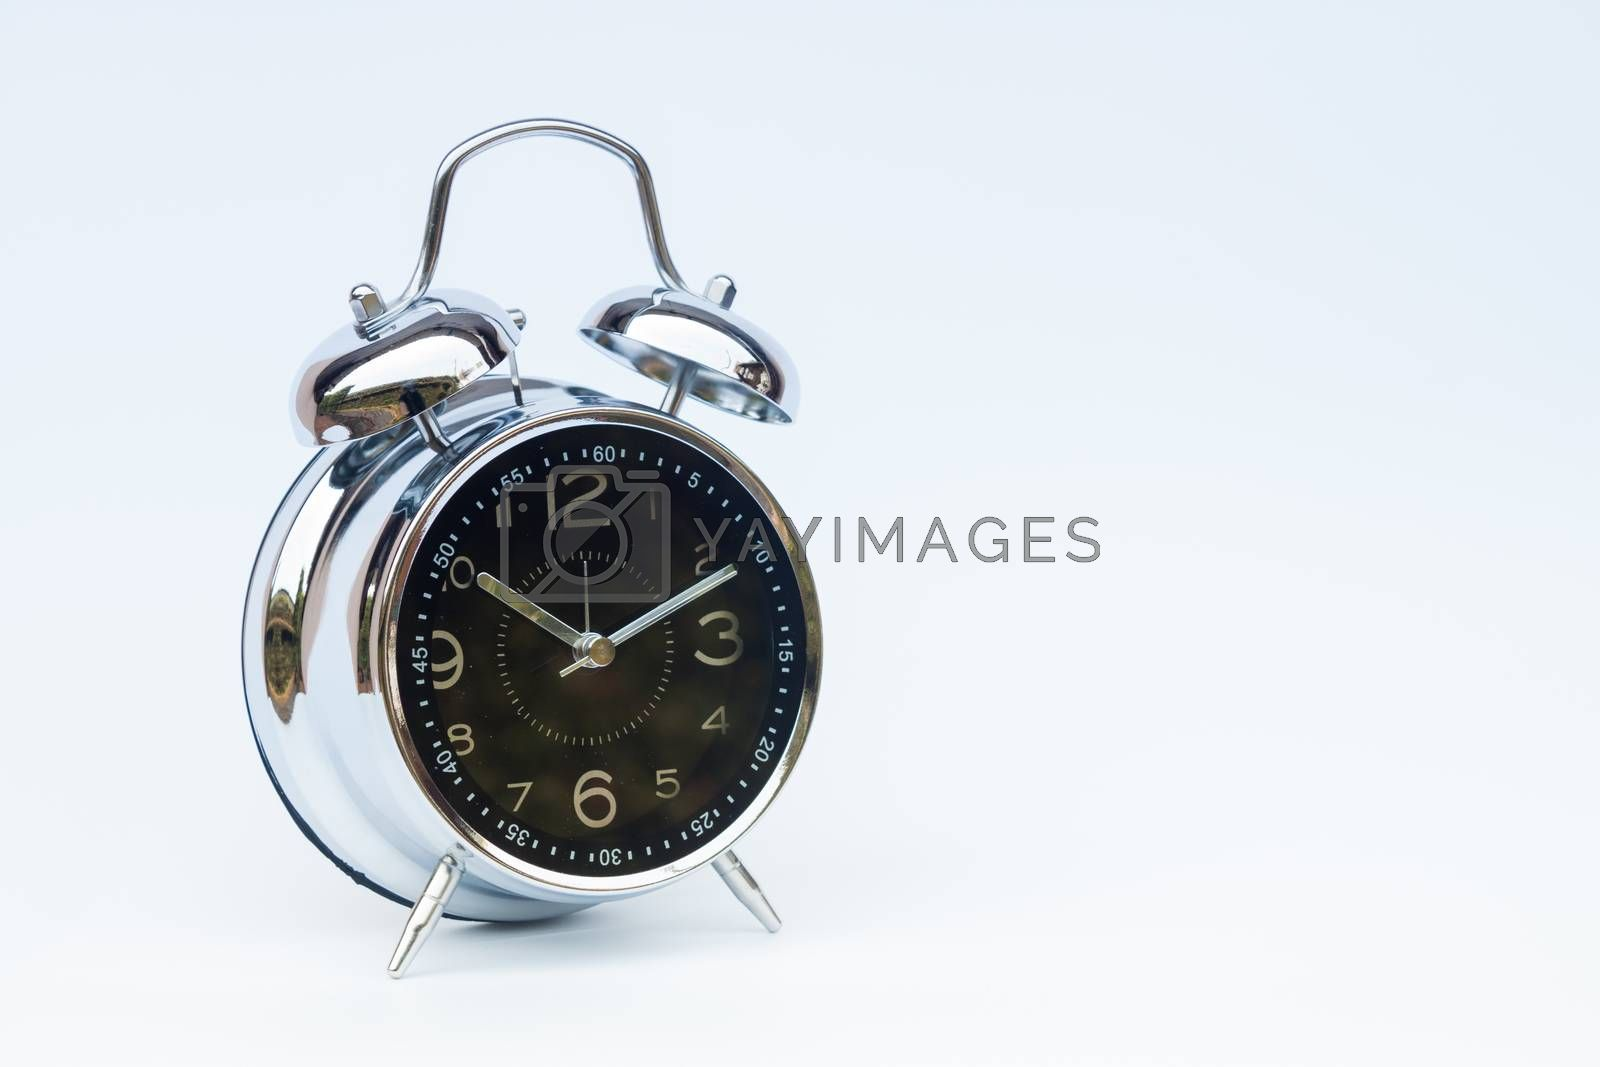 Alarm clock isolated on white background by punsayaporn